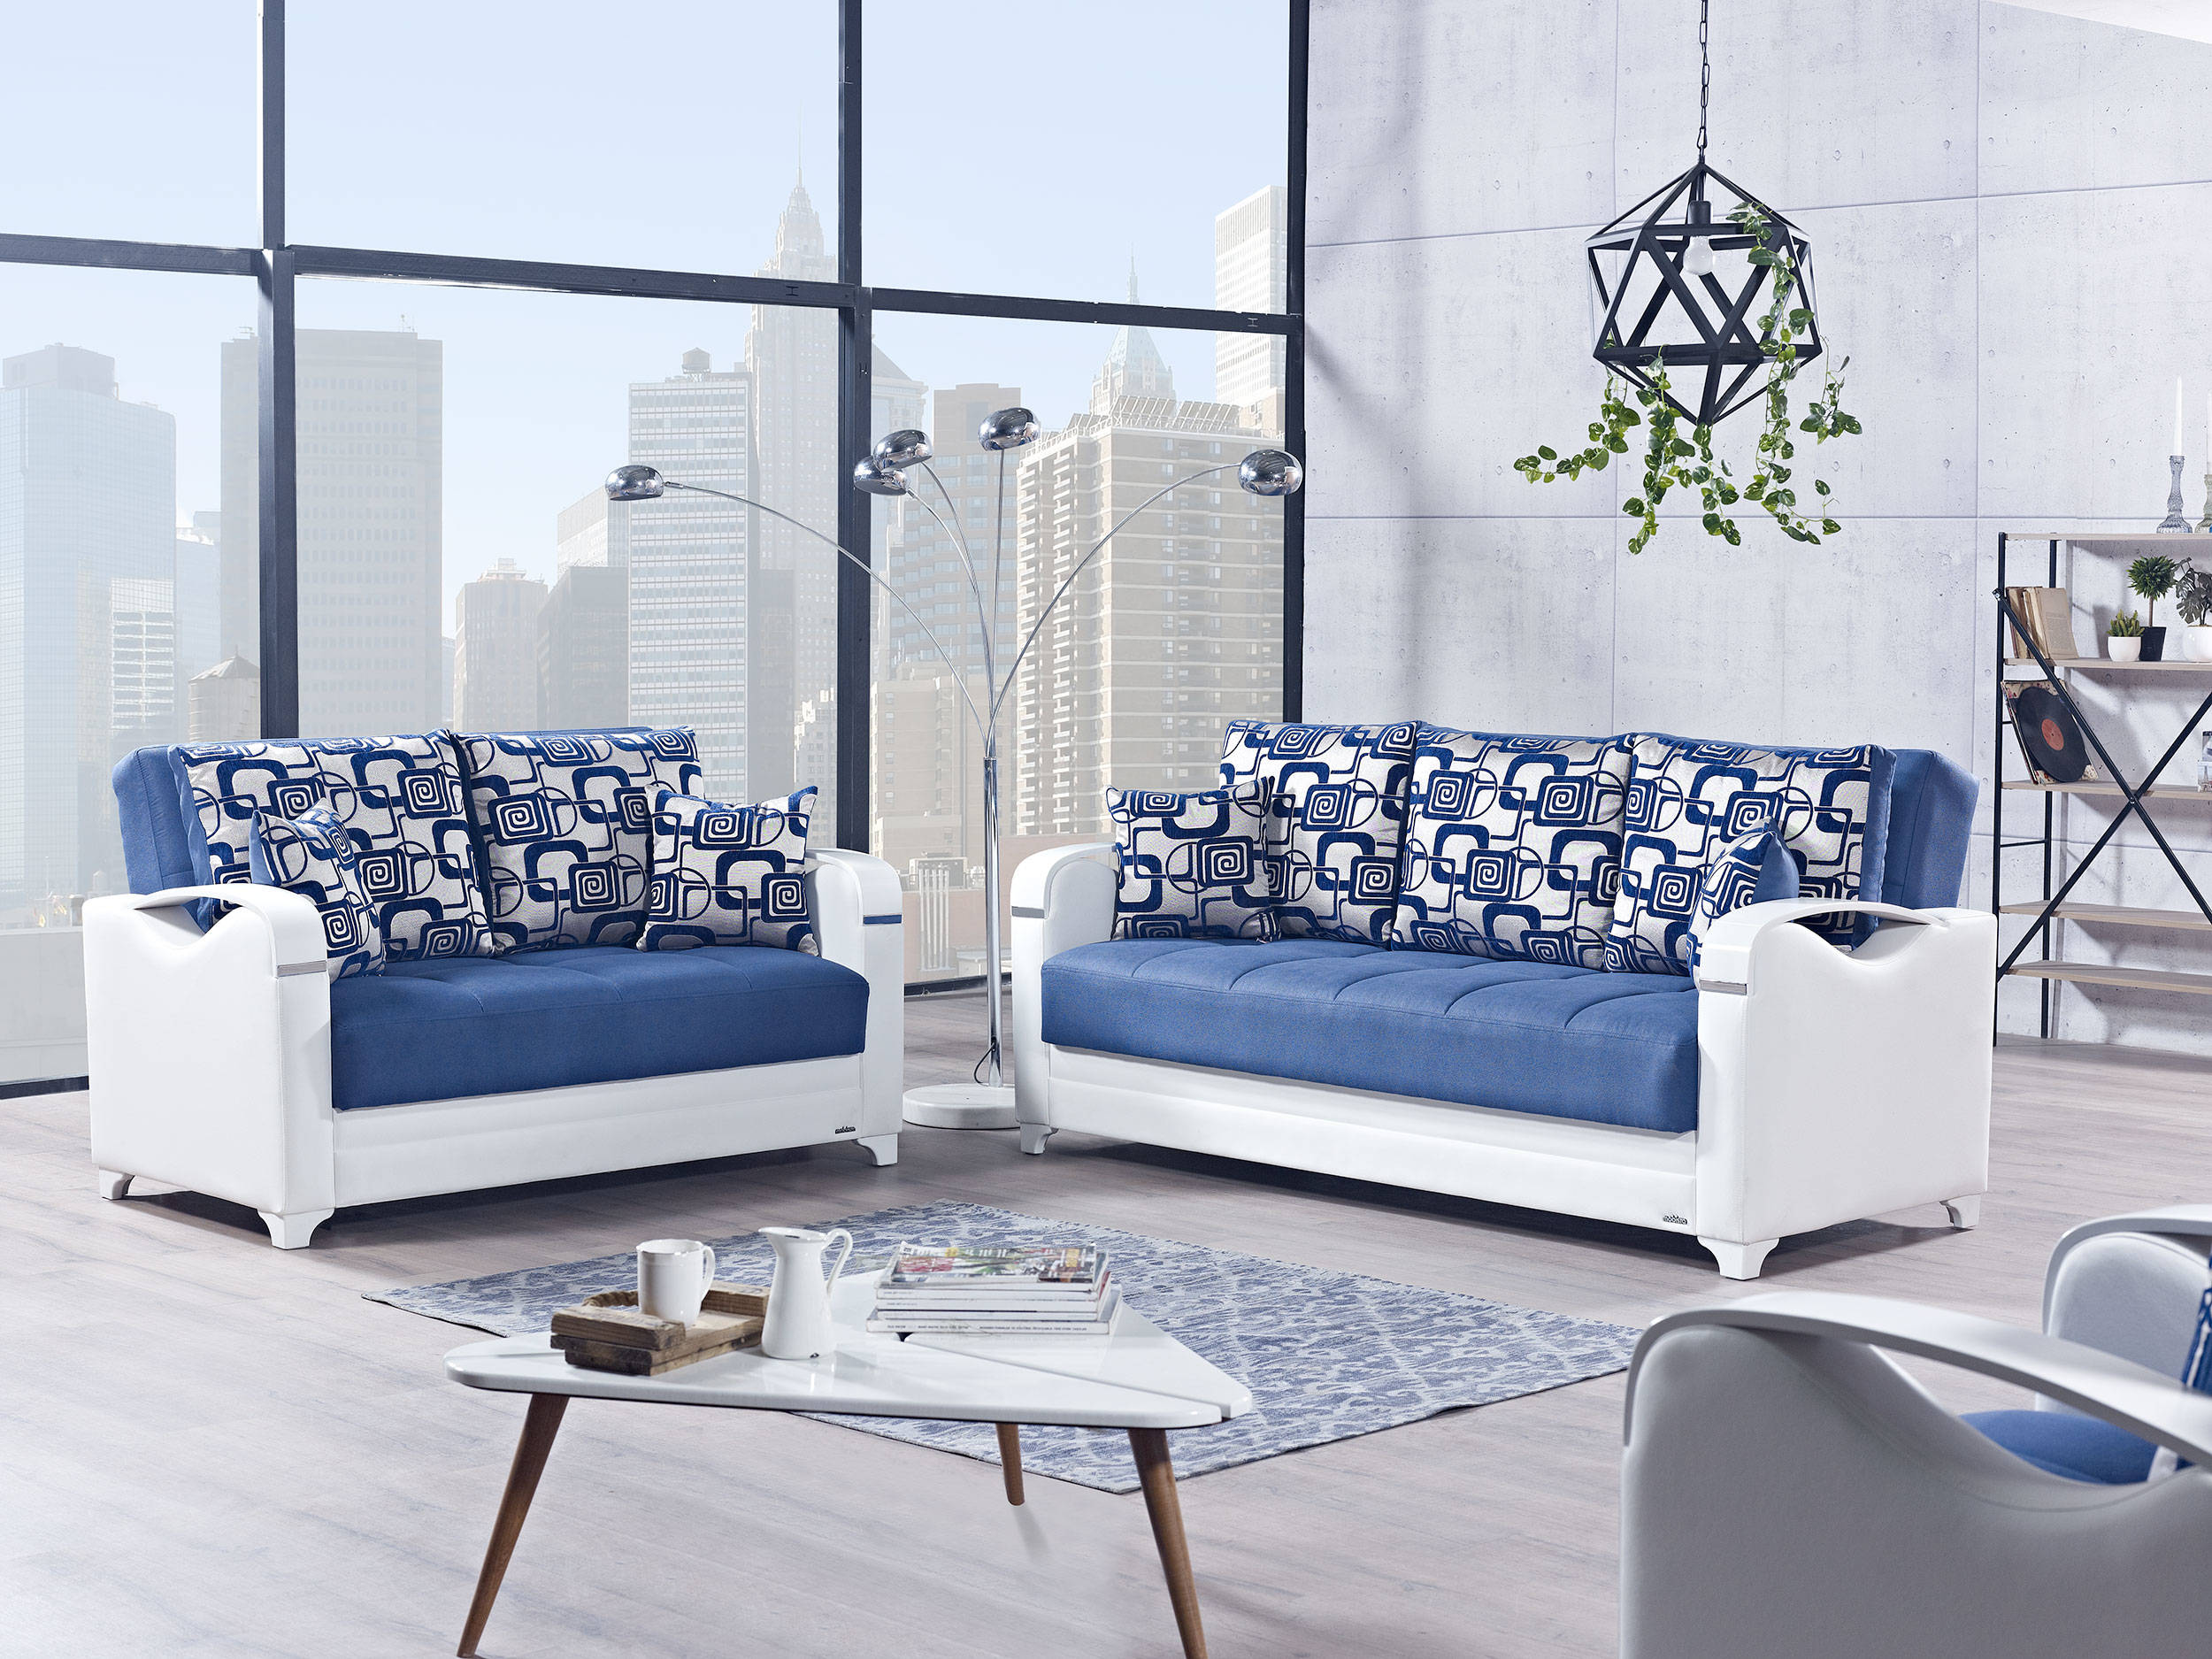 Astonishing Mobetto Vintage Navy Blue Fabric Pu Mdf Plywood 3Pc Living Room Set Download Free Architecture Designs Scobabritishbridgeorg